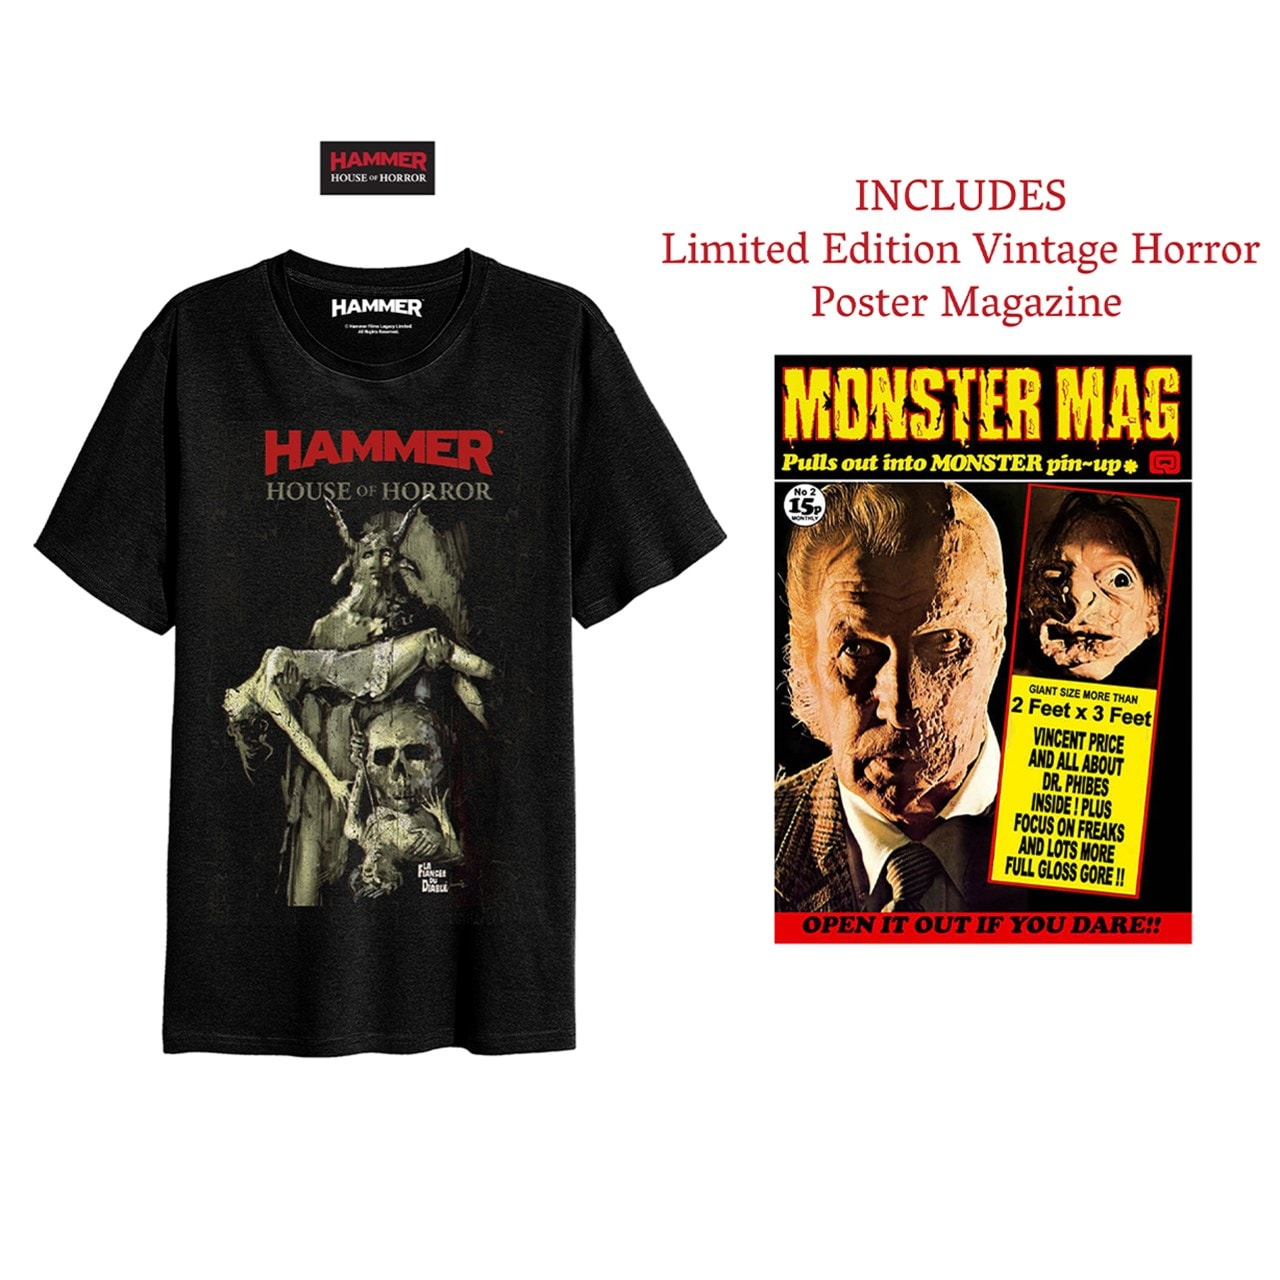 Hammer Horror: House Of Horror: T-Shirt and Poster Magazine Set (Small) - 1